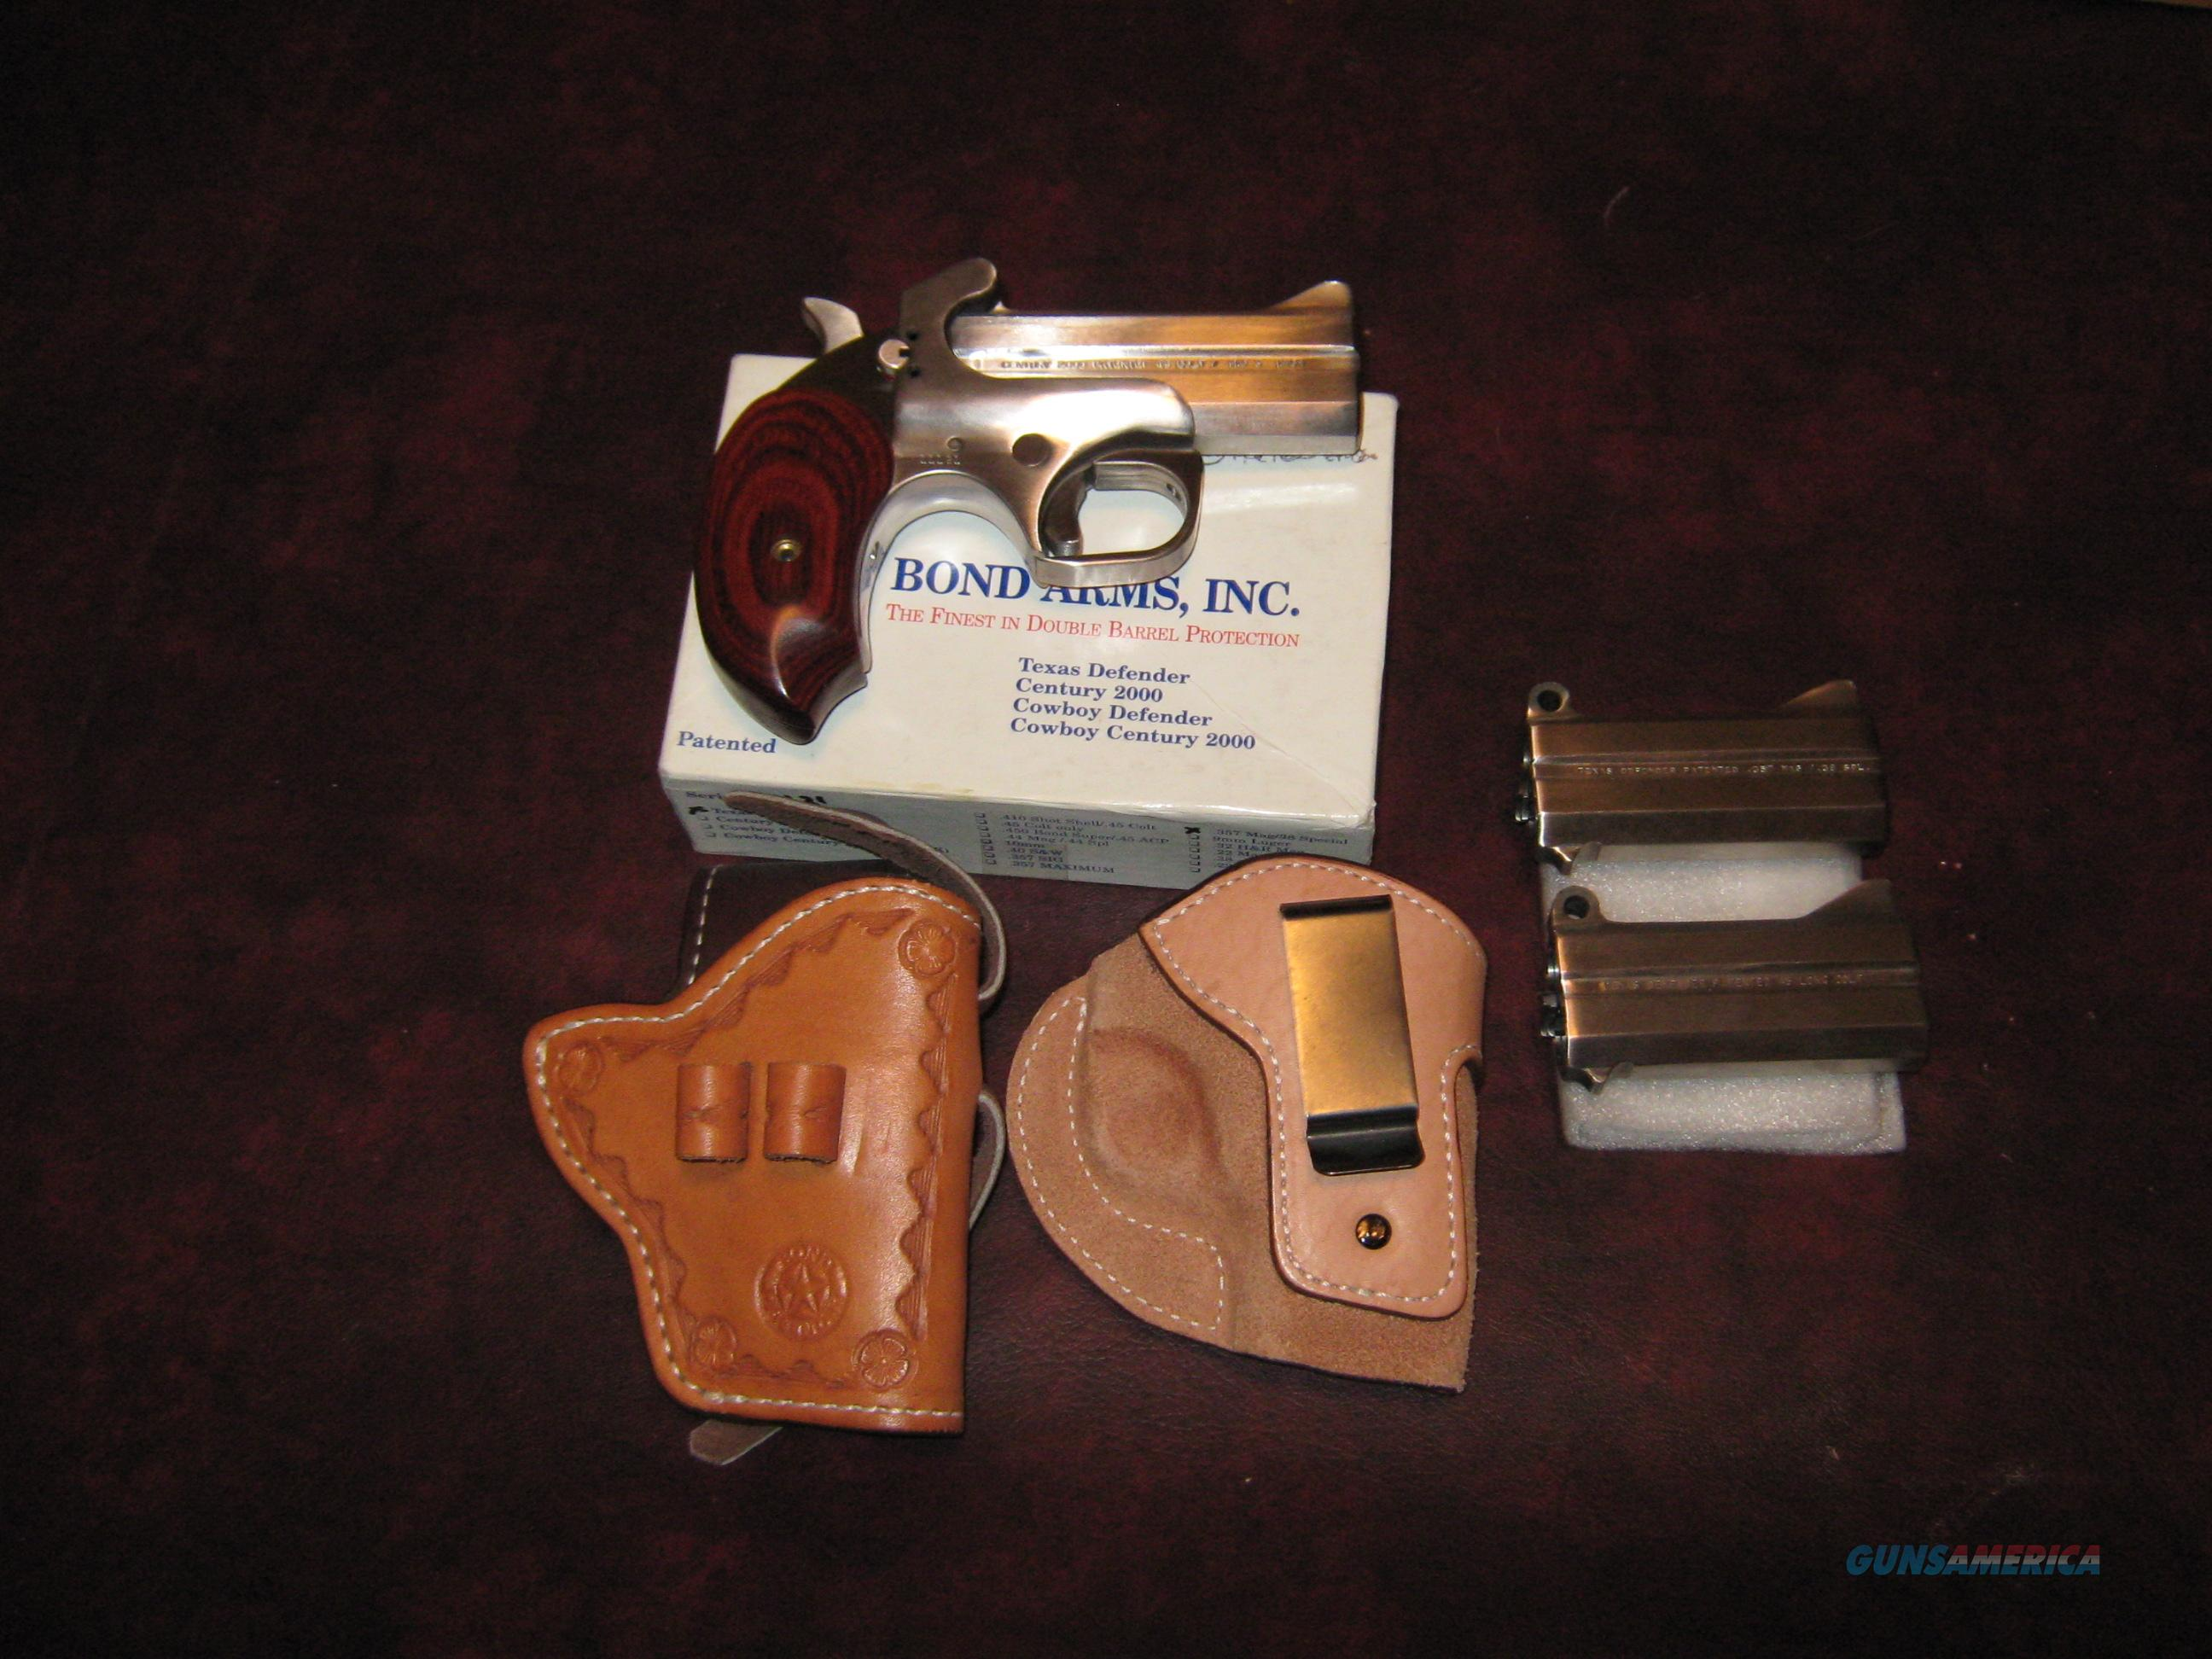 LIKE NEW BOND ARMS DERRINGER 3 BARRELS 2 HOLSTERS  Guns > Pistols > Bond Derringers